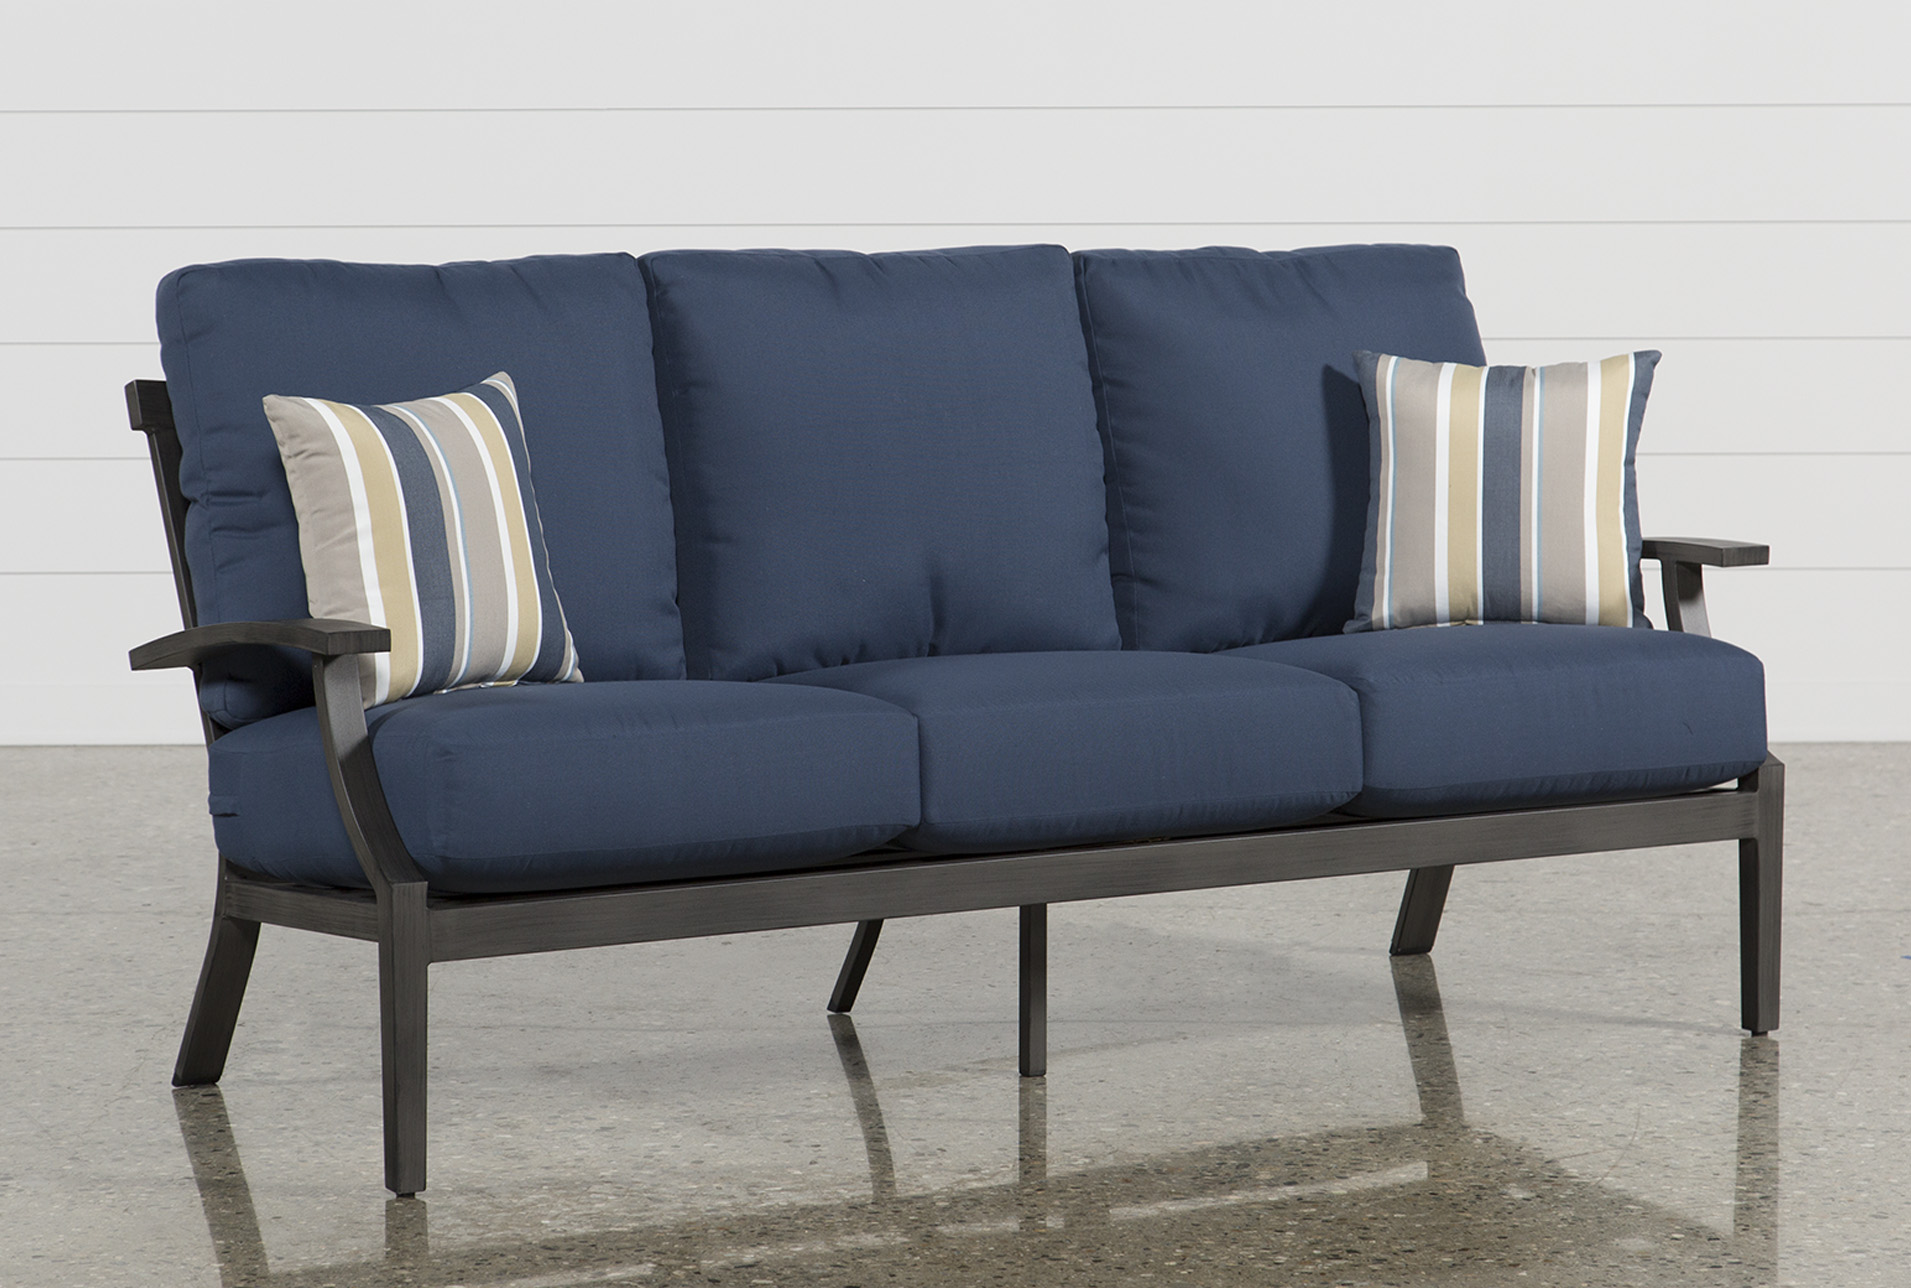 Outdoor Martinique Navy Sofa (Qty: 1) Has Been Successfully Added To Your  Cart.